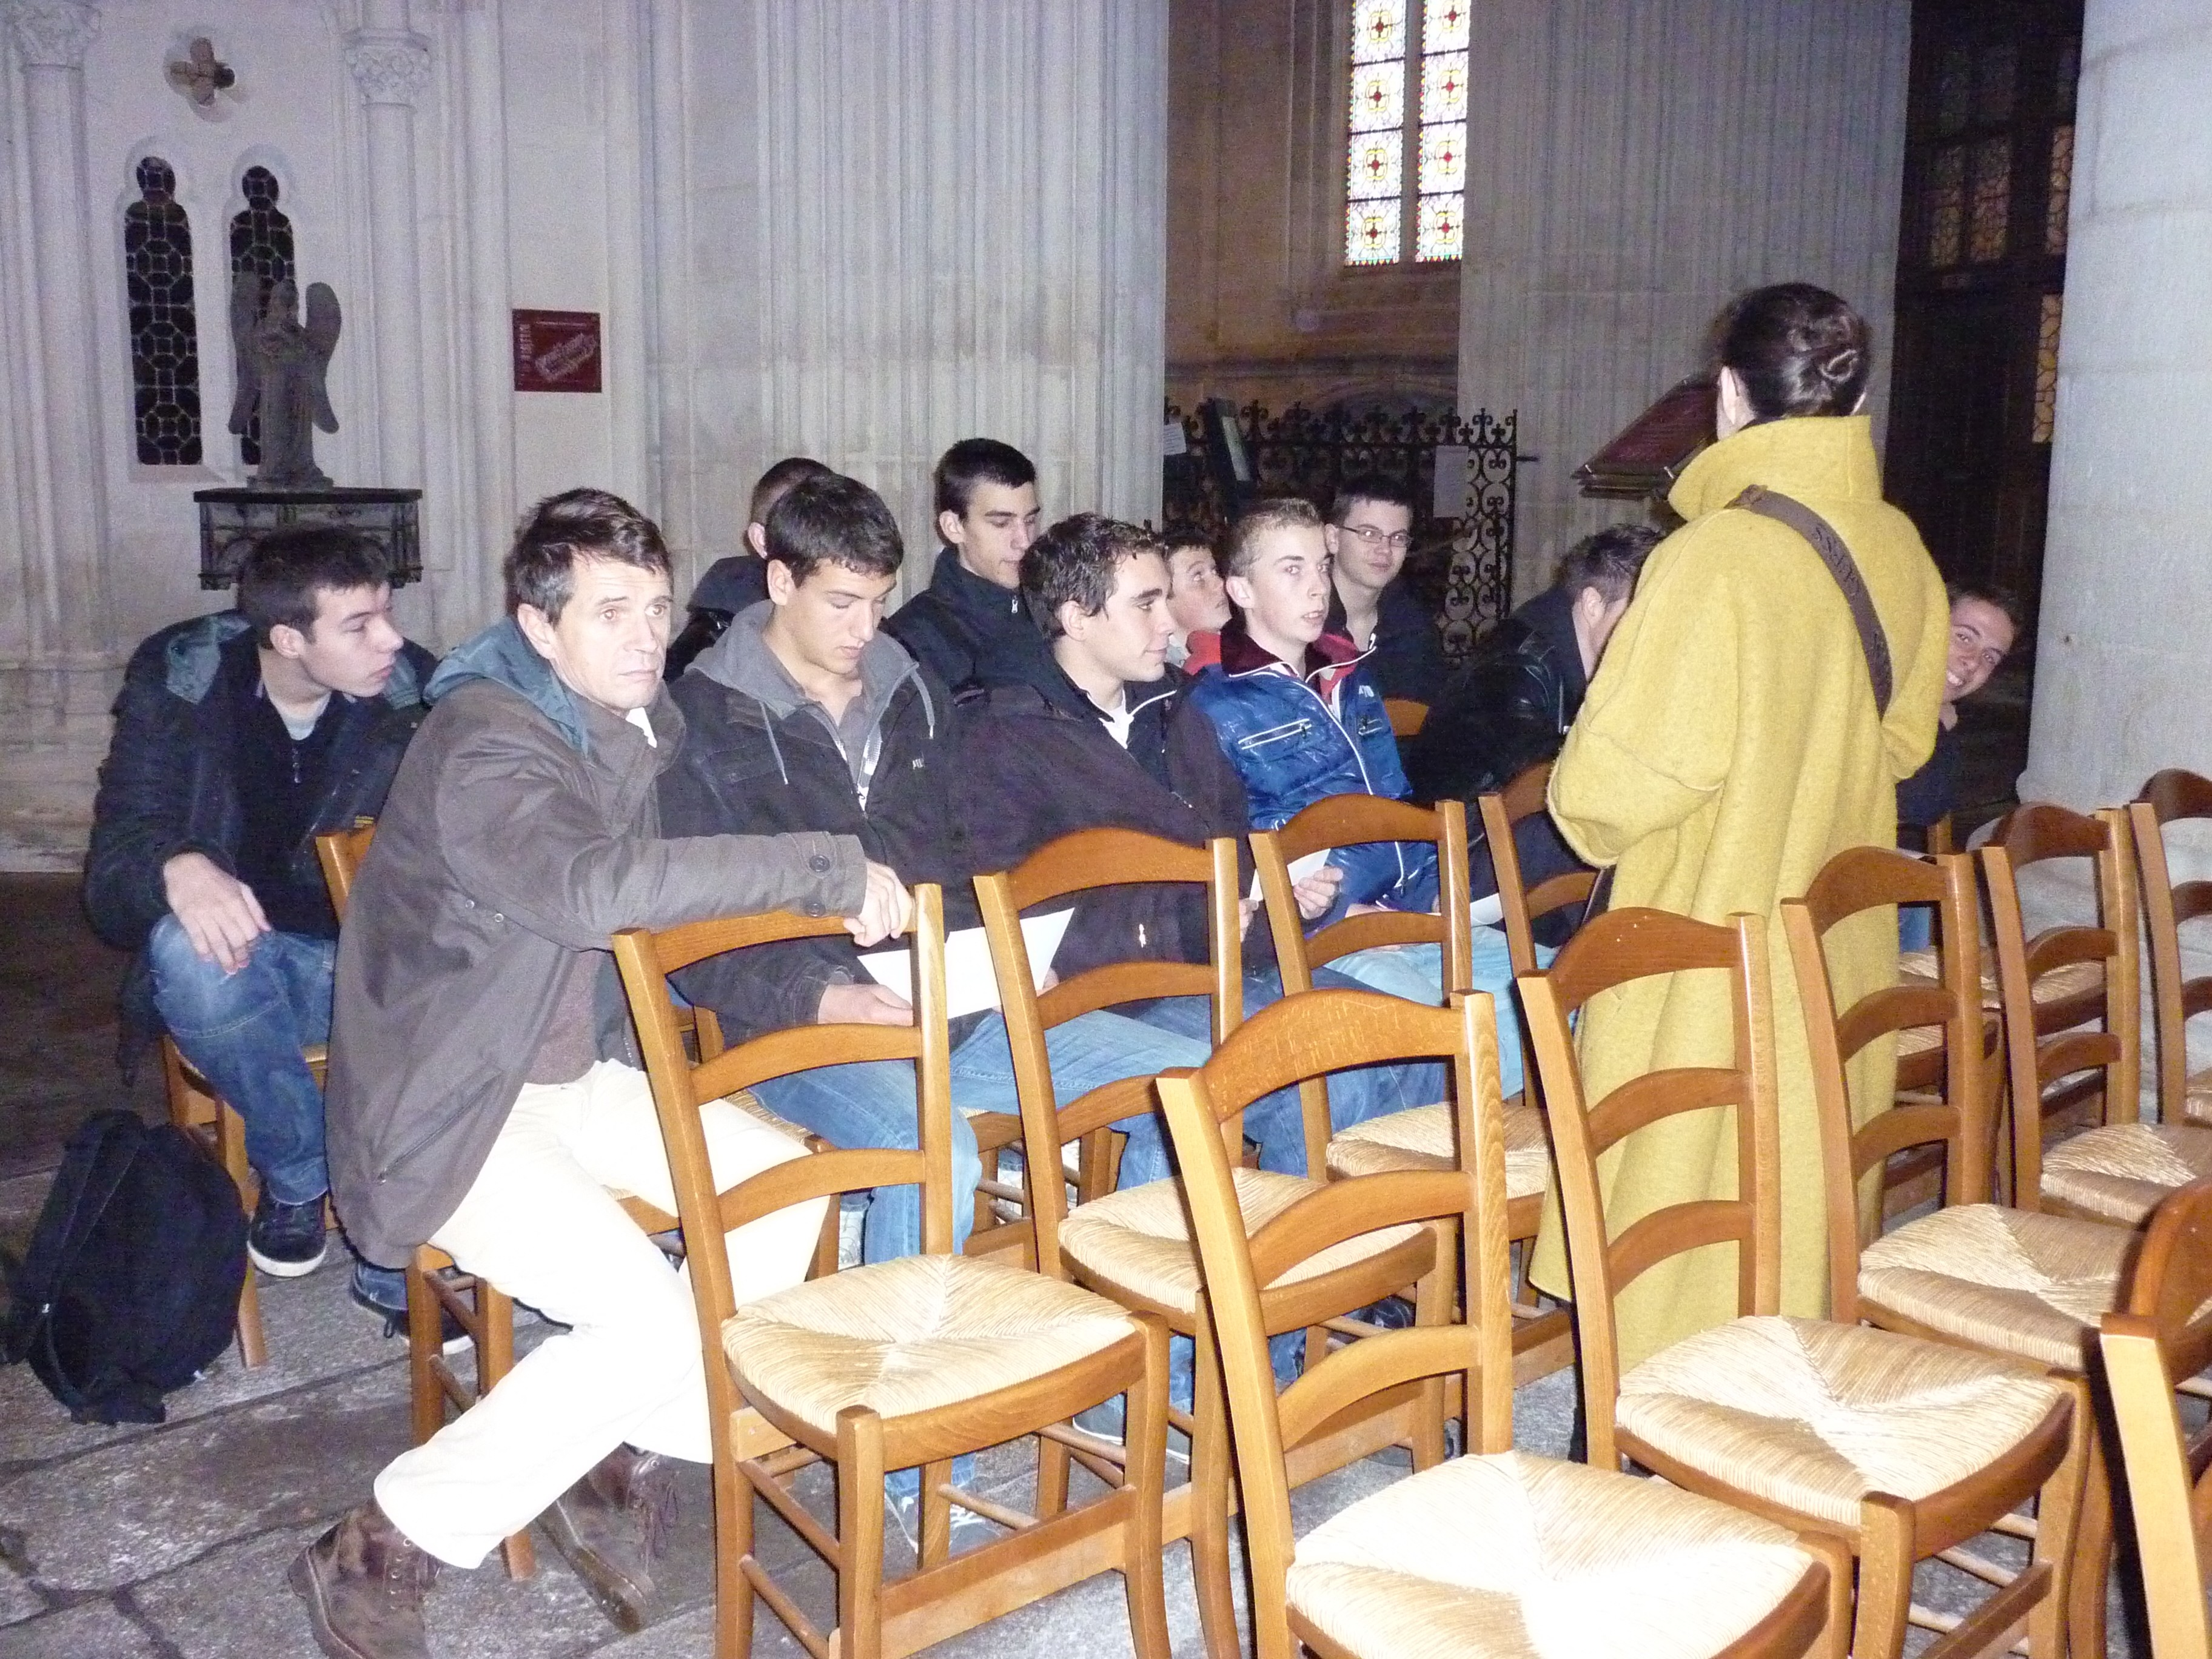 Groupe attentif au guide